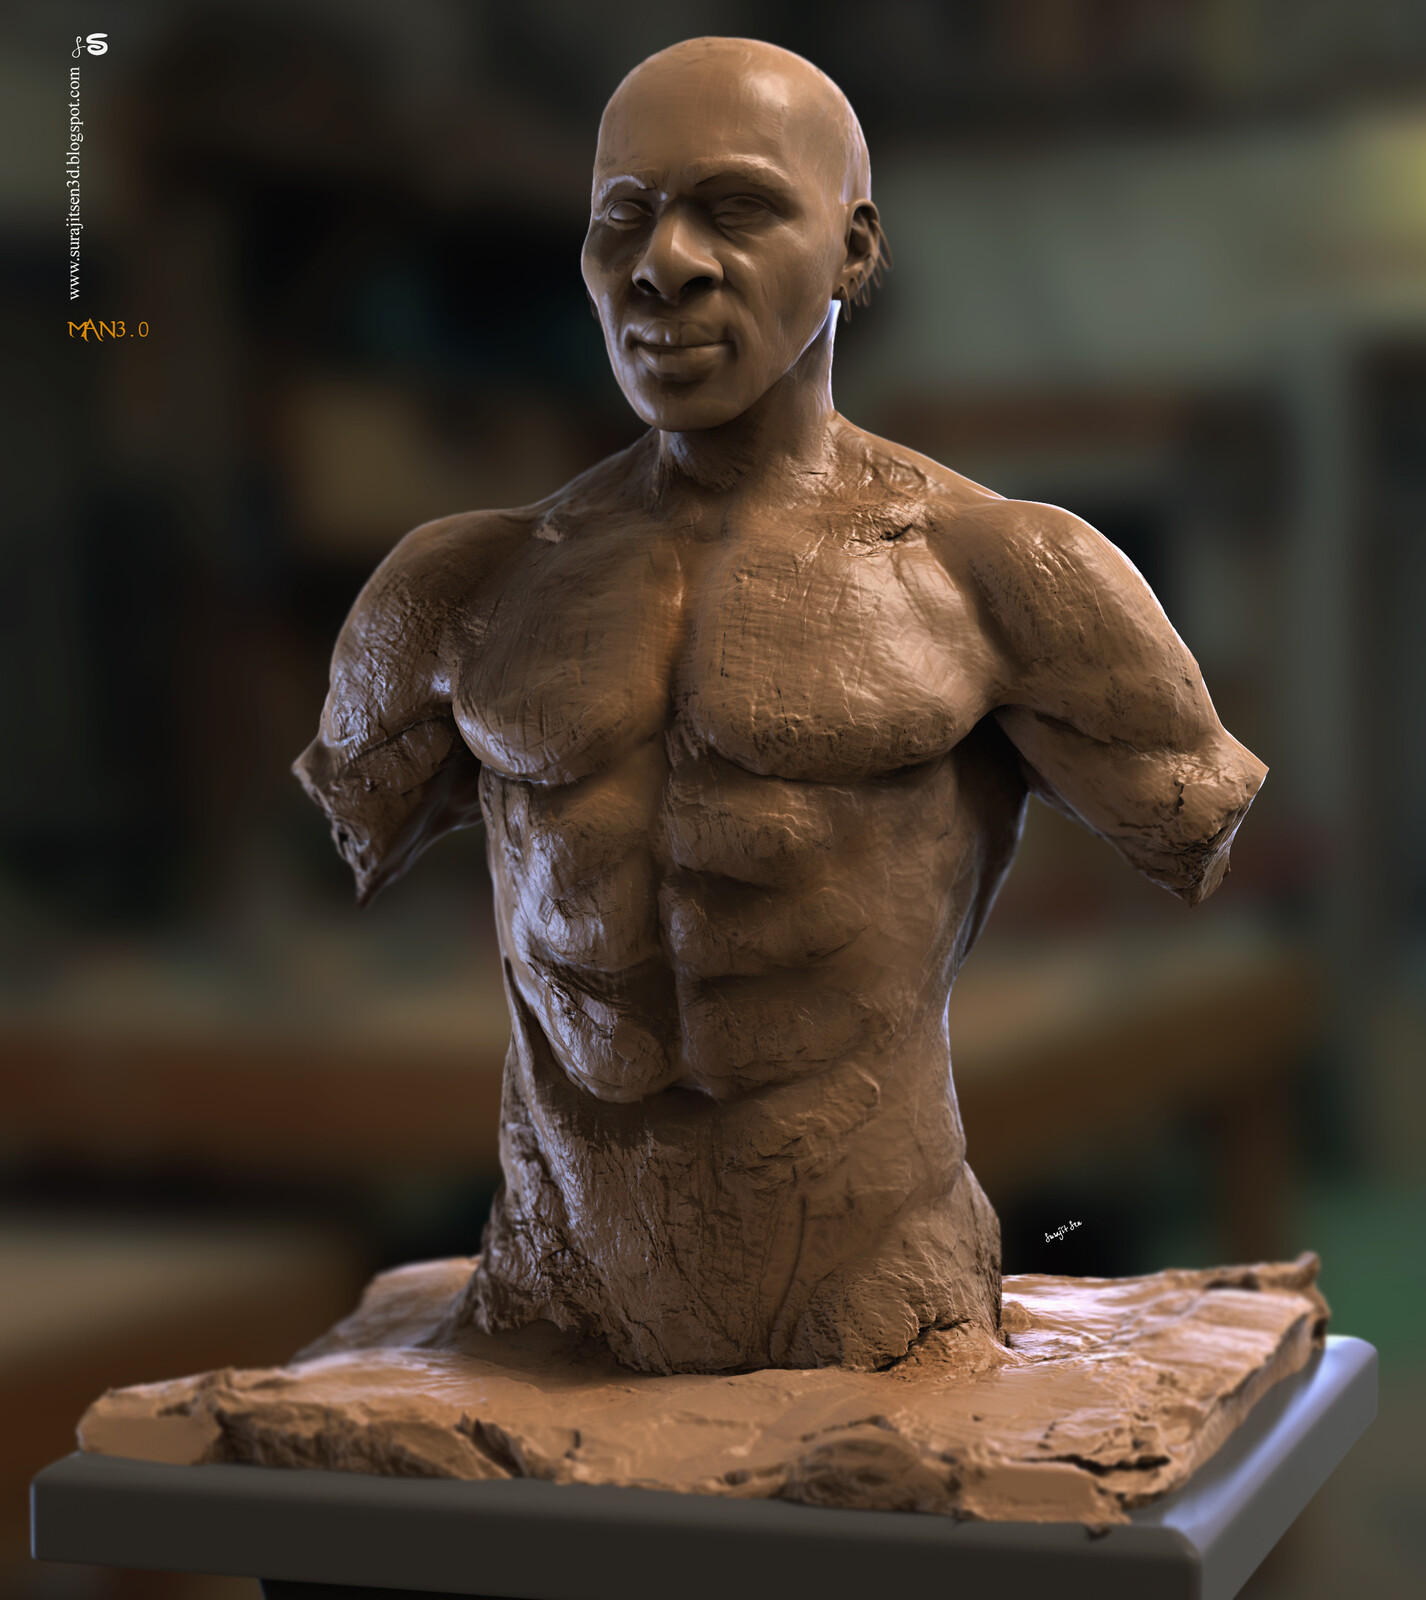 Man3.0 One of my free time study works. Digital Sculpture Background music- #hanszimmermusic